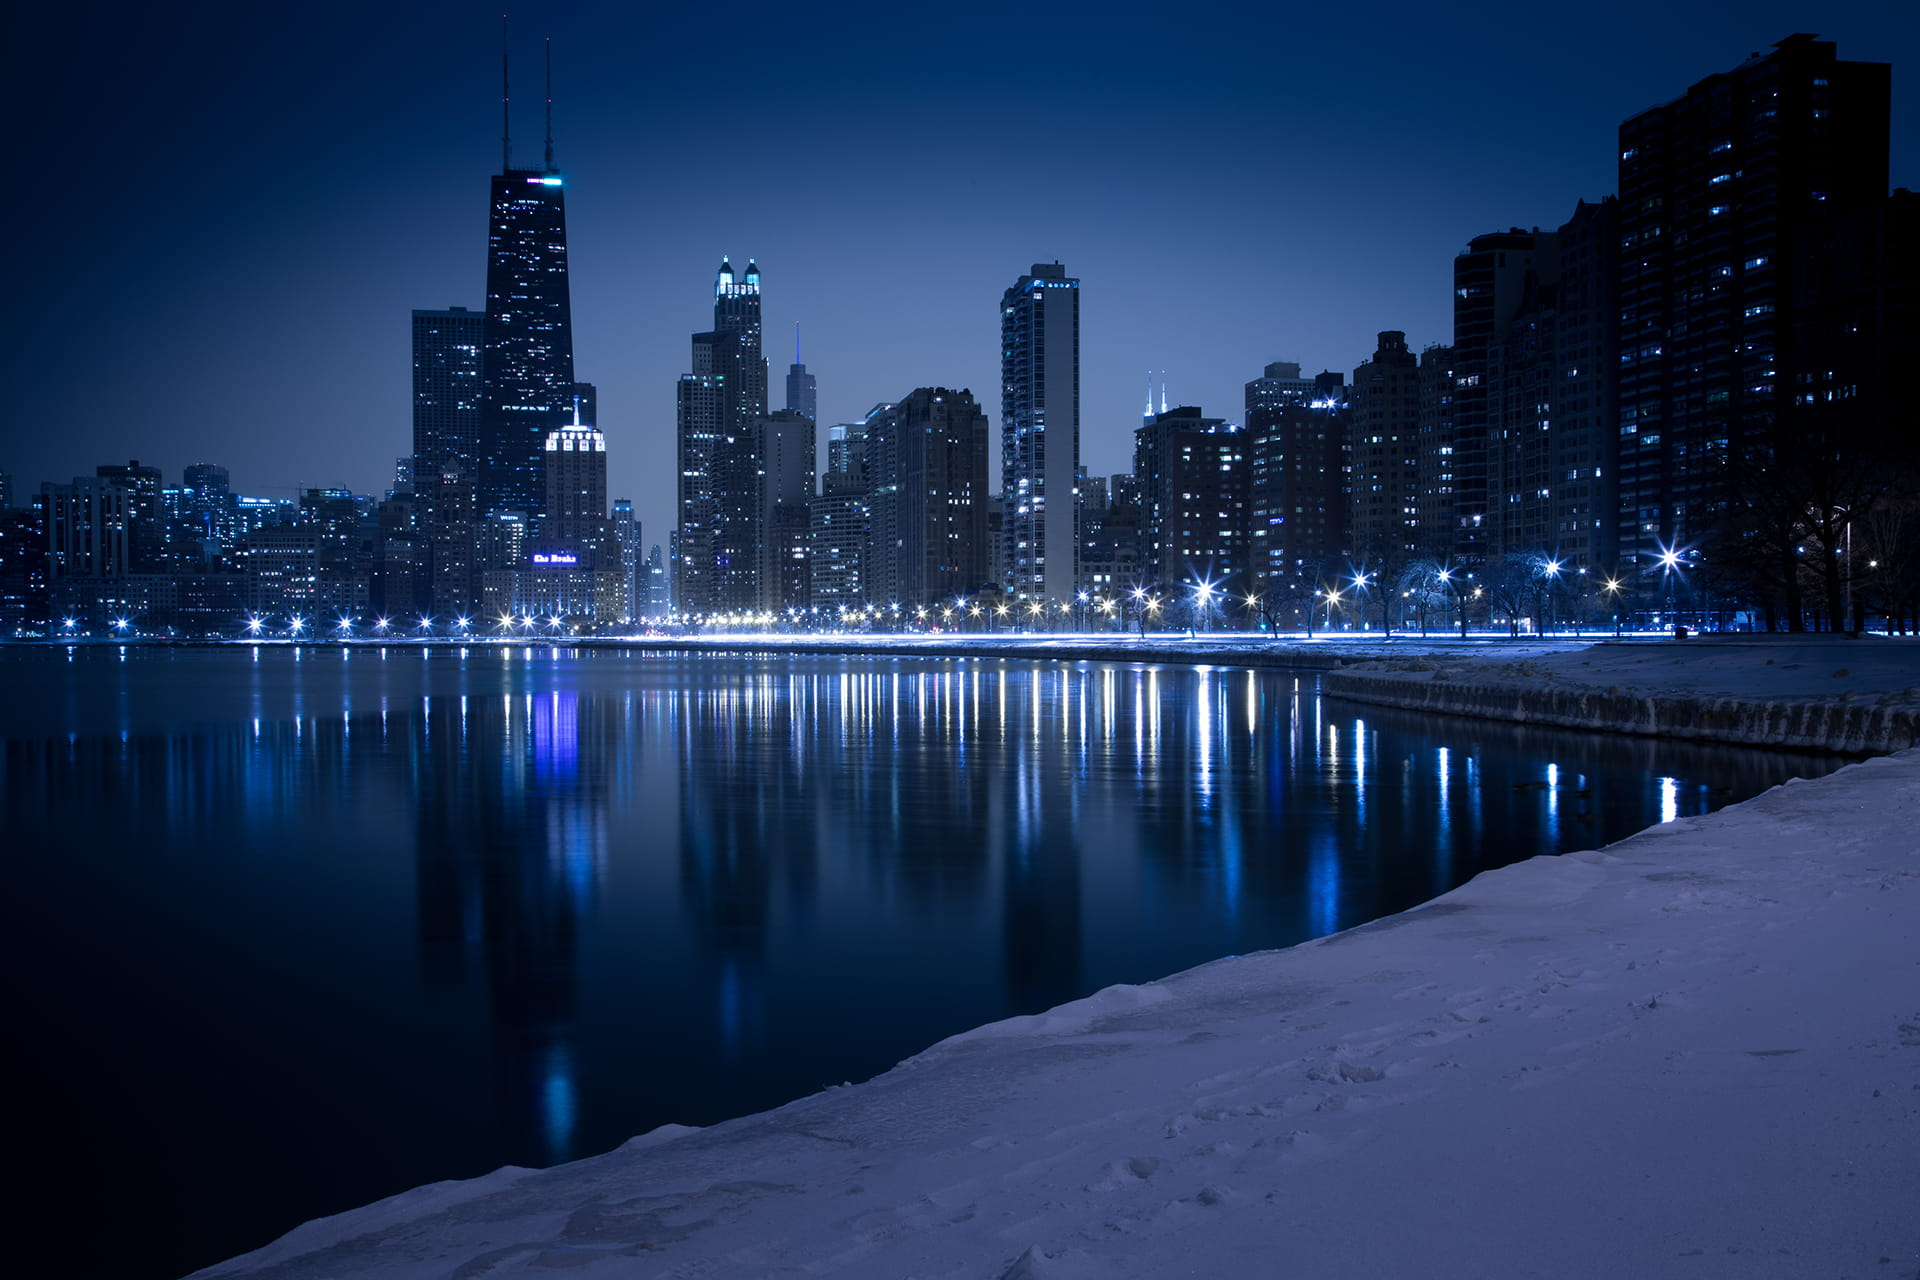 Blue and Black Chicago Skyline at Night